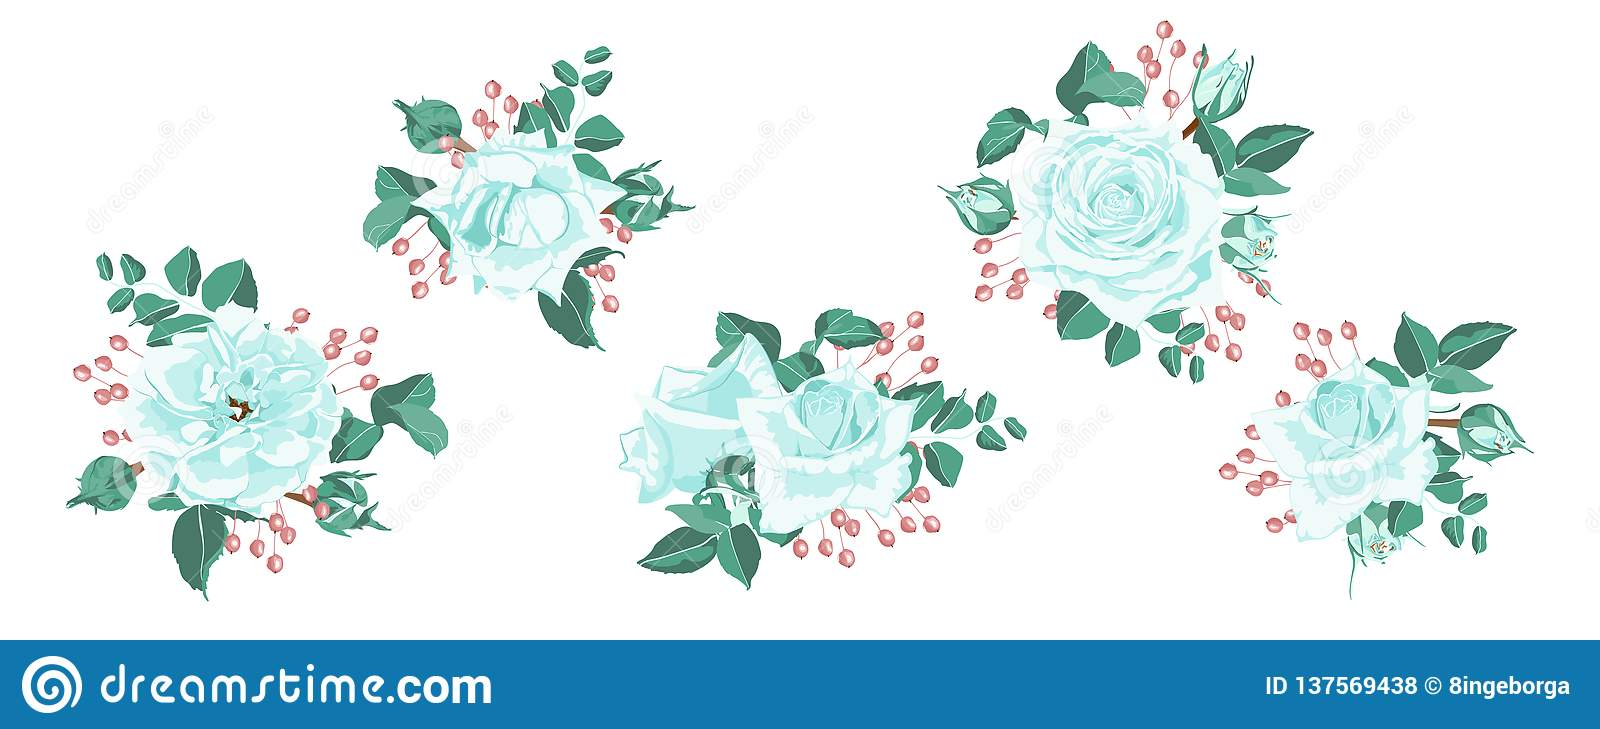 Roses Bouquet For Rustic Wedding Design  Stock Vector